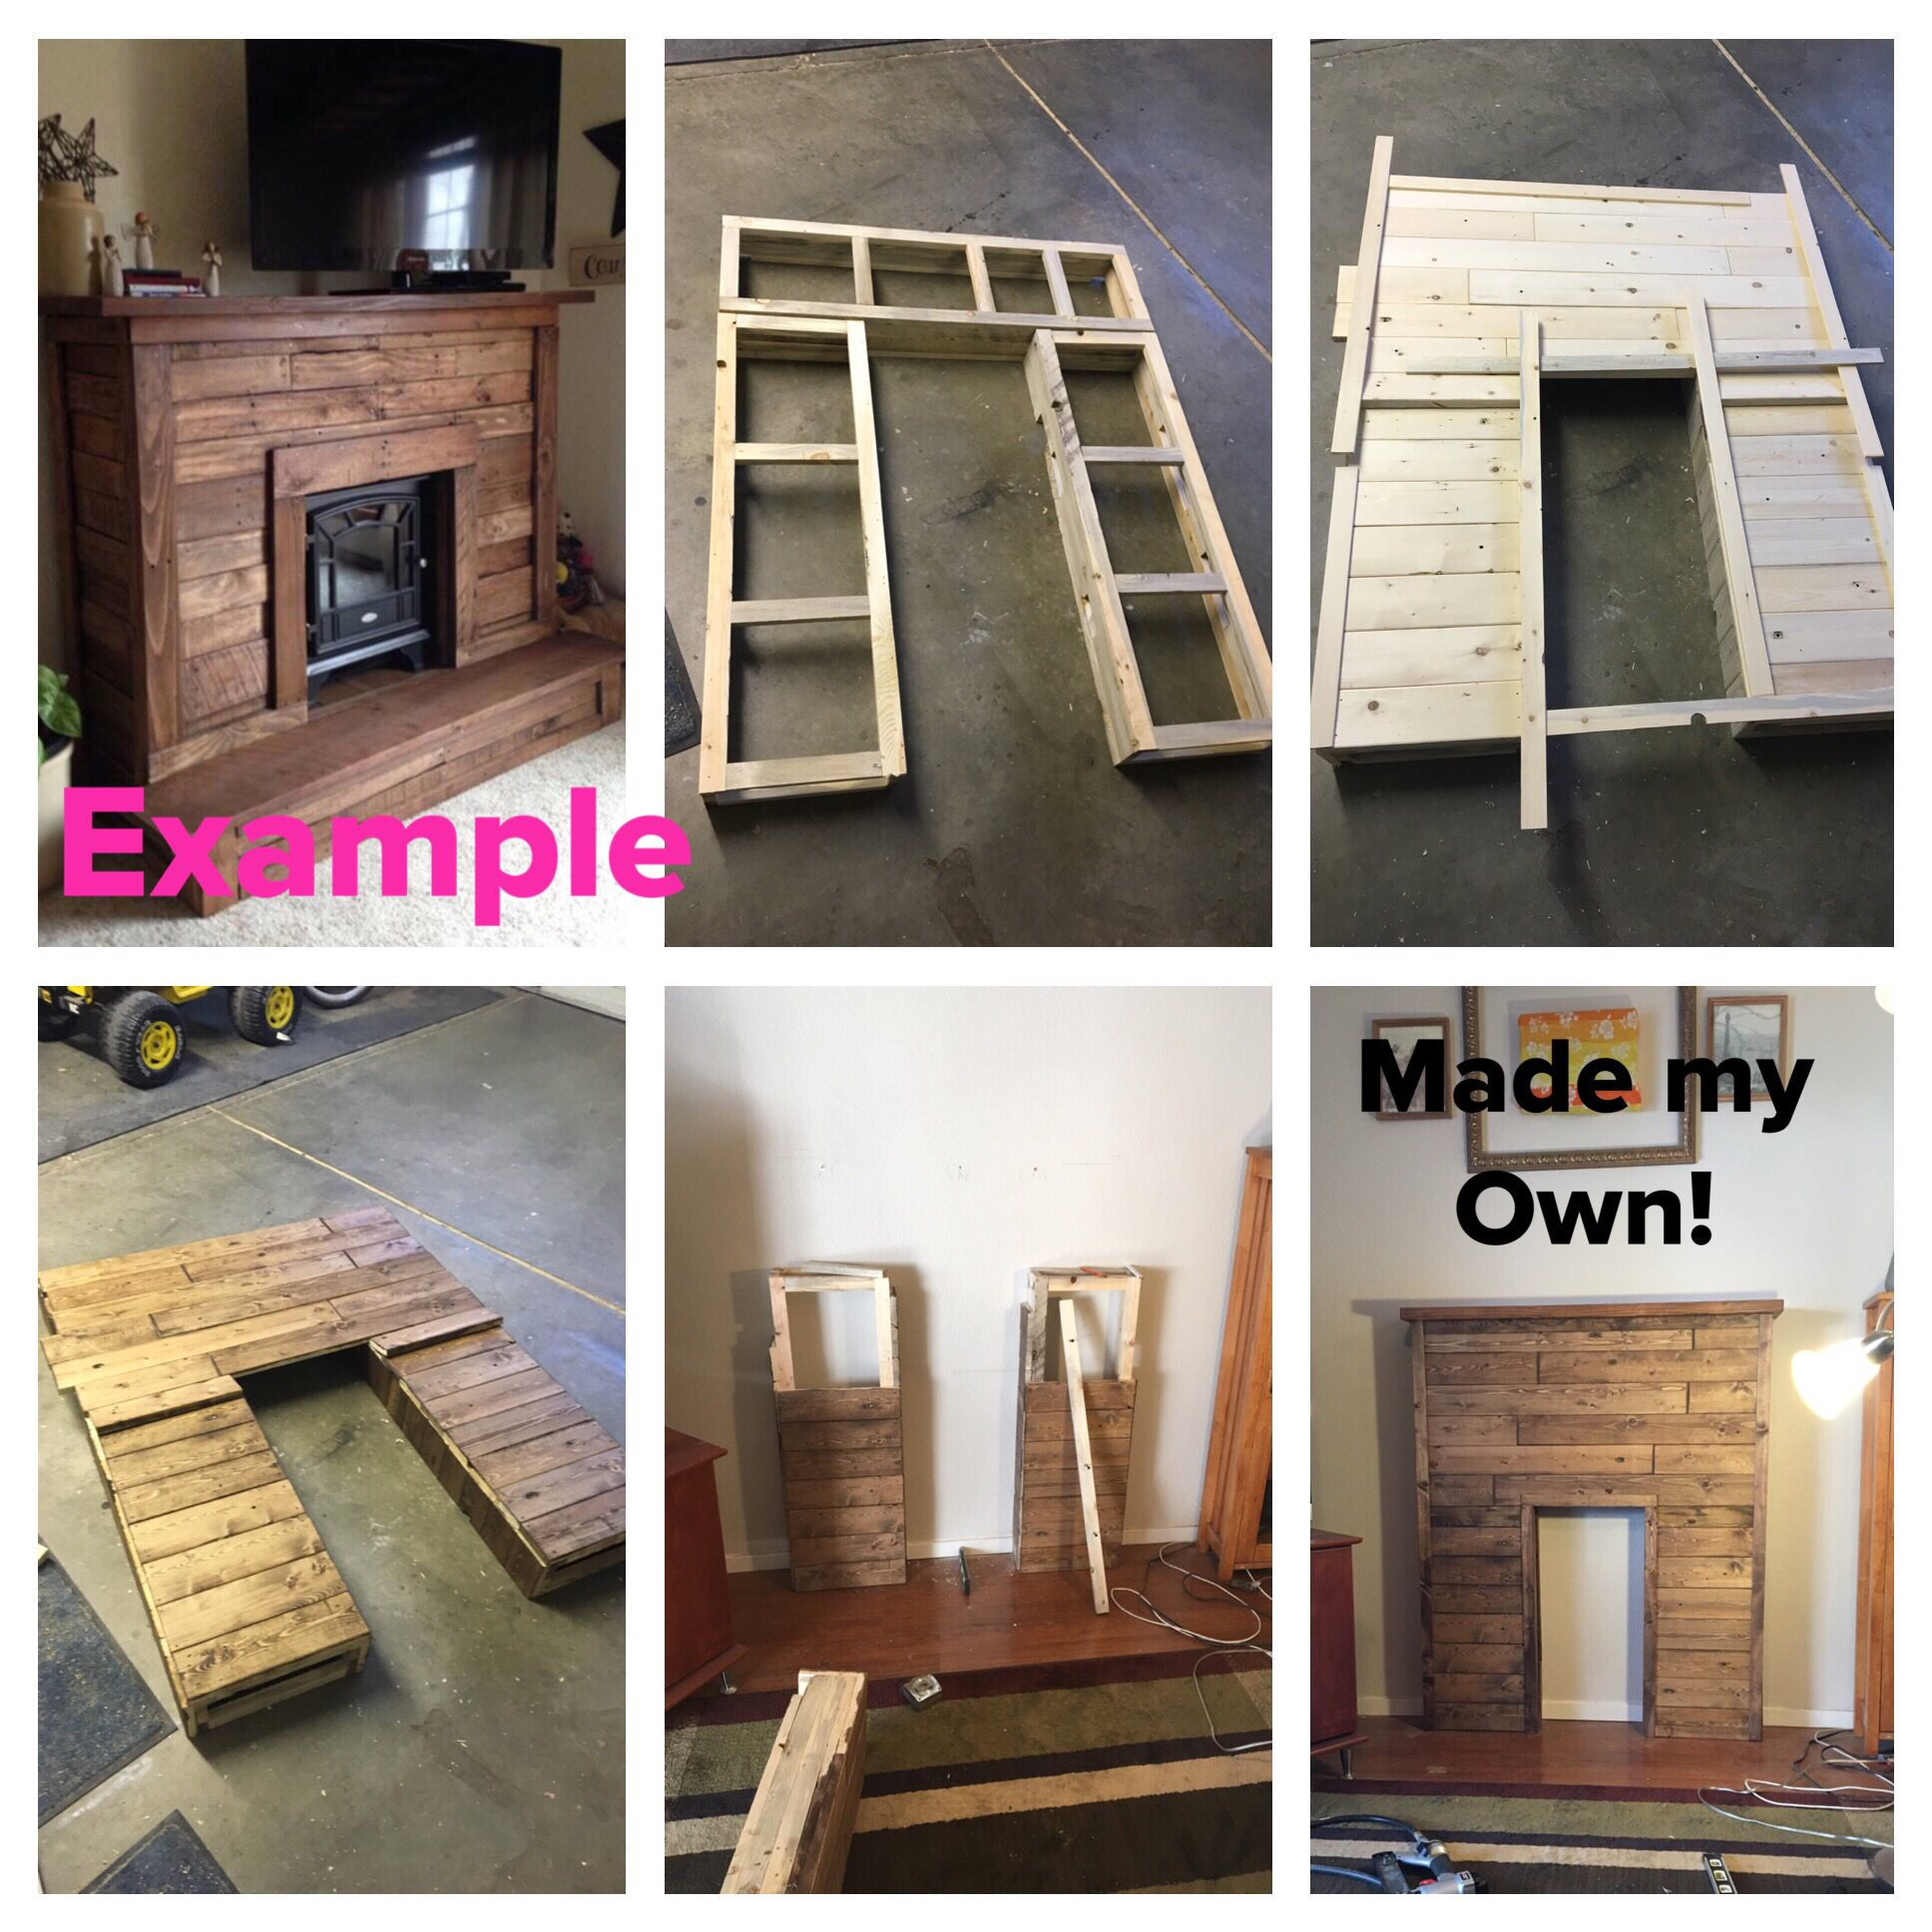 Made my own diy faux fireplace mantel mantle from pallet wood